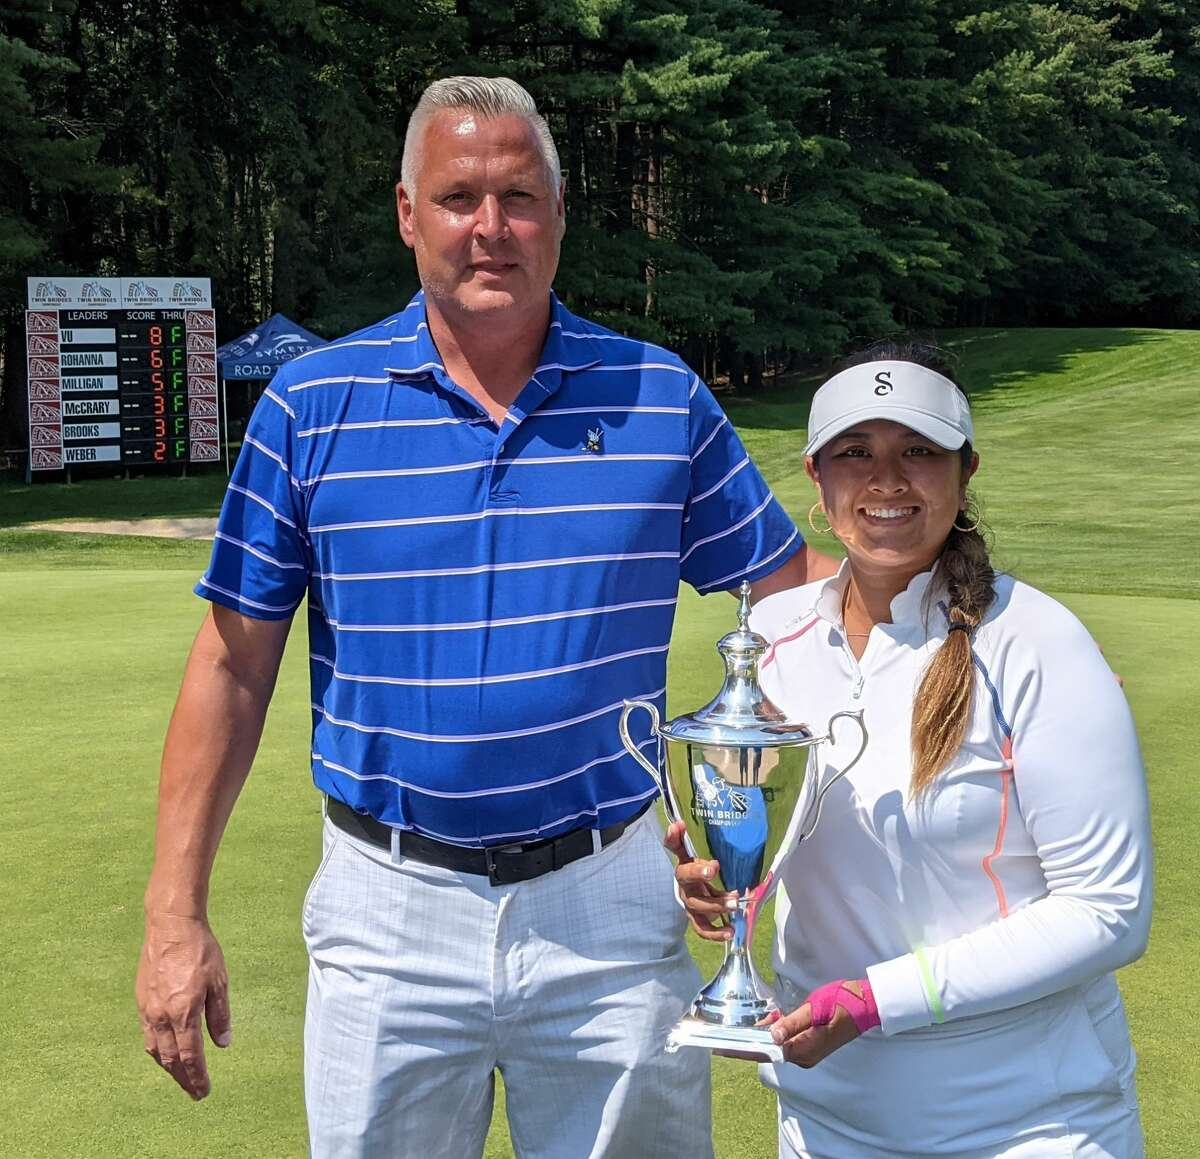 Twin Bridges Championship tournament director Jim Miller presents the trophy to the winner, Lilia Vu of Fountain Valley, Calif., on Sunday, July 25, 2021, at the Pinehaven Country Club in Guilderland. (Pete Dougherty/Times Union)